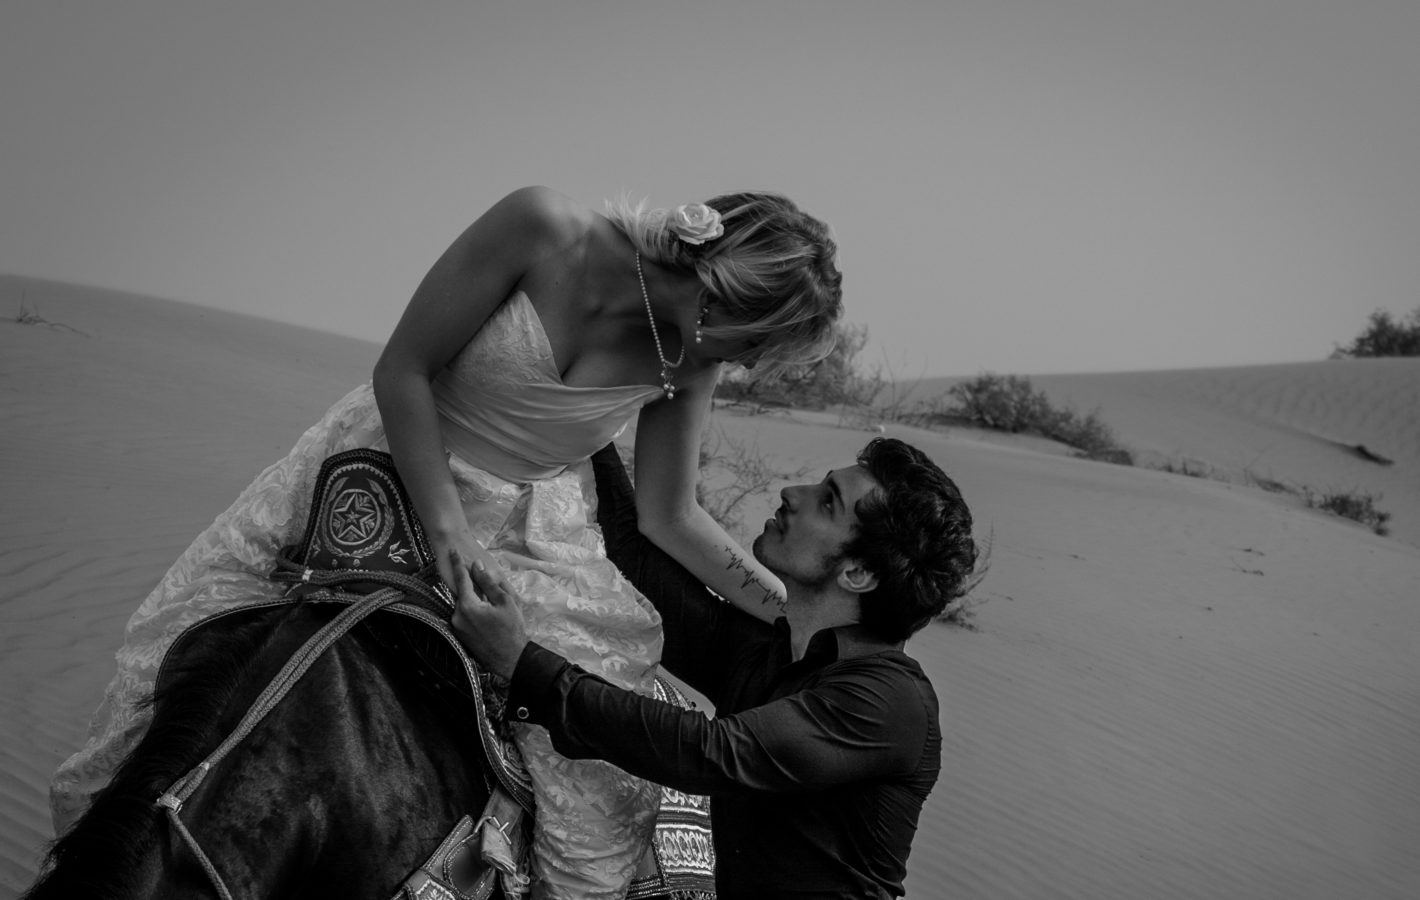 EMIRATES-WEDDING-PHOTOGRAPHY-DESERT-COUPLE-FEMALE-WEDDING-PHOTOGRAPHER-SASKIA-MARLOHa